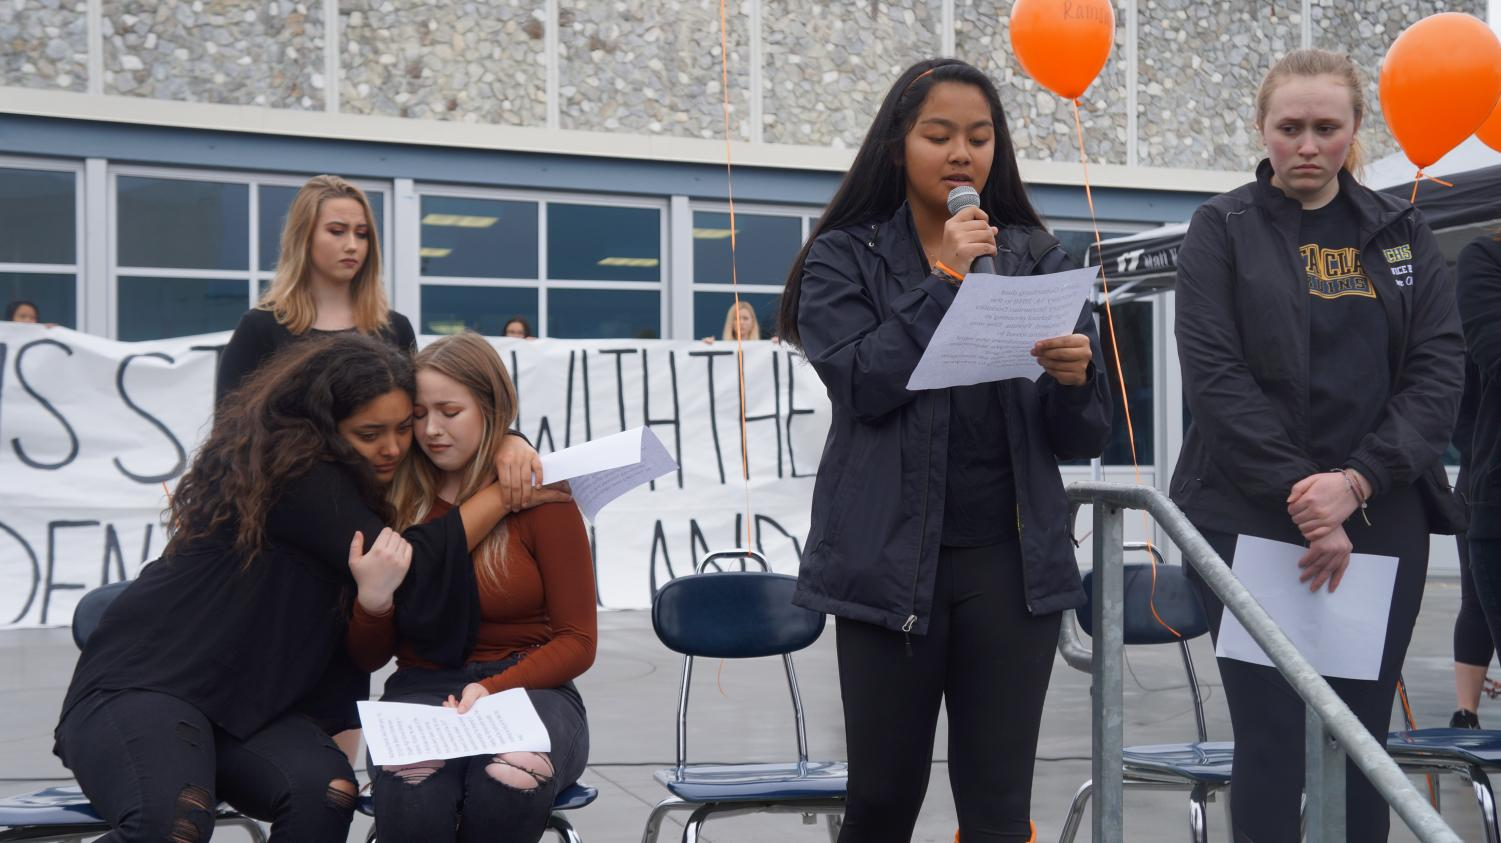 Junior Skylar Barbero gives one of the 17 obituaries for the students who lost their lives.